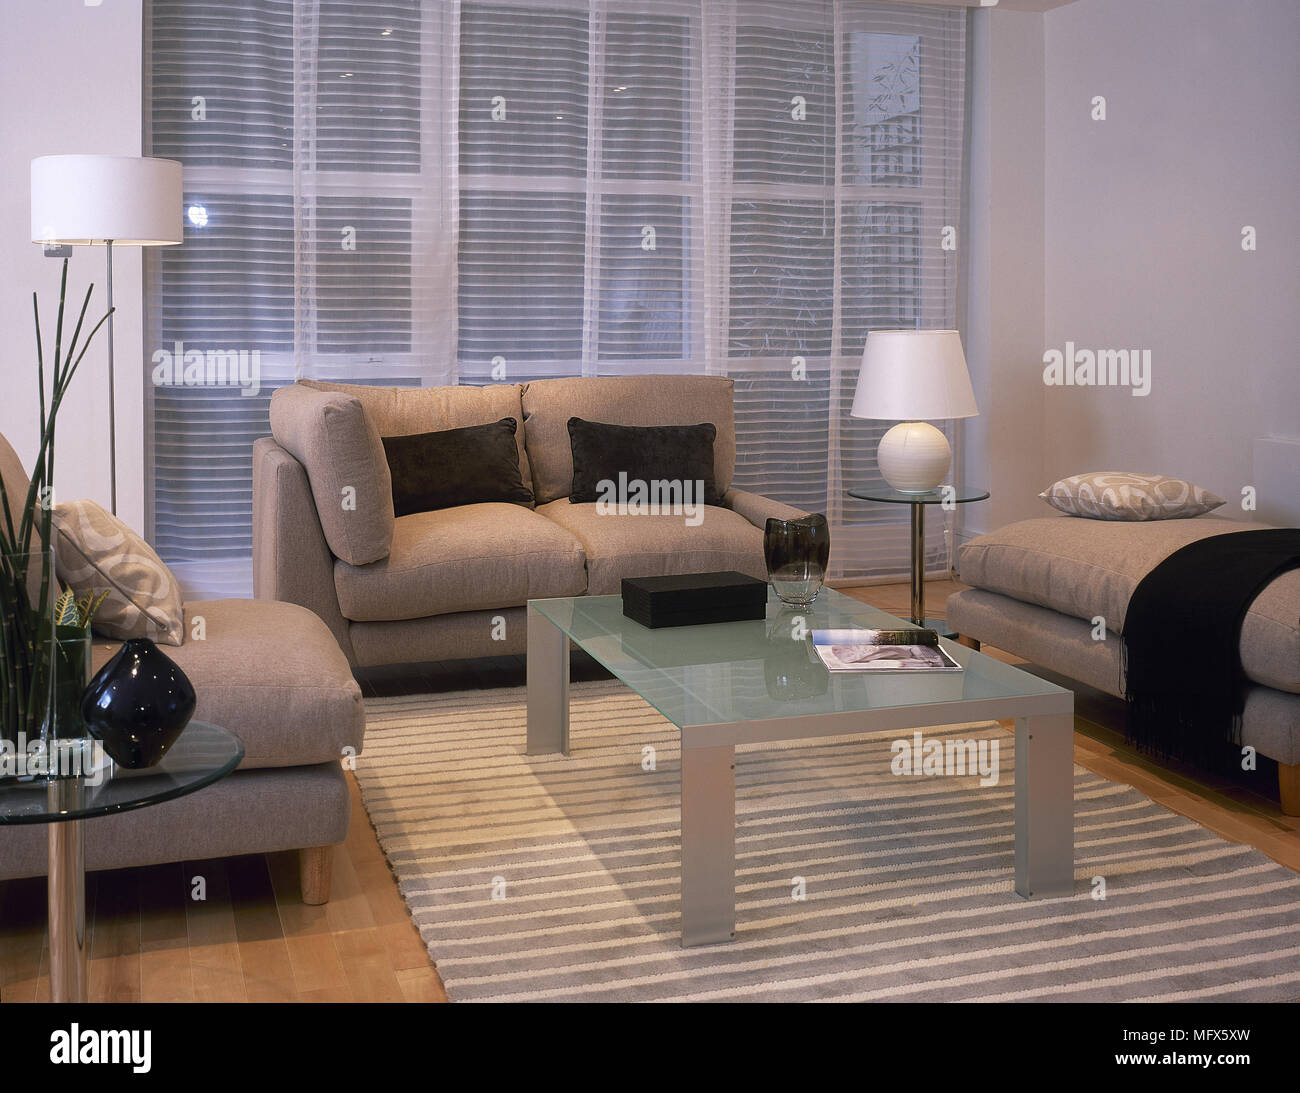 Modern Sitting Room With An Overstuffed Sofa And Chaise, Glass Top Coffee  Table, Area Rug, And Sheer Curtains Over The Window.